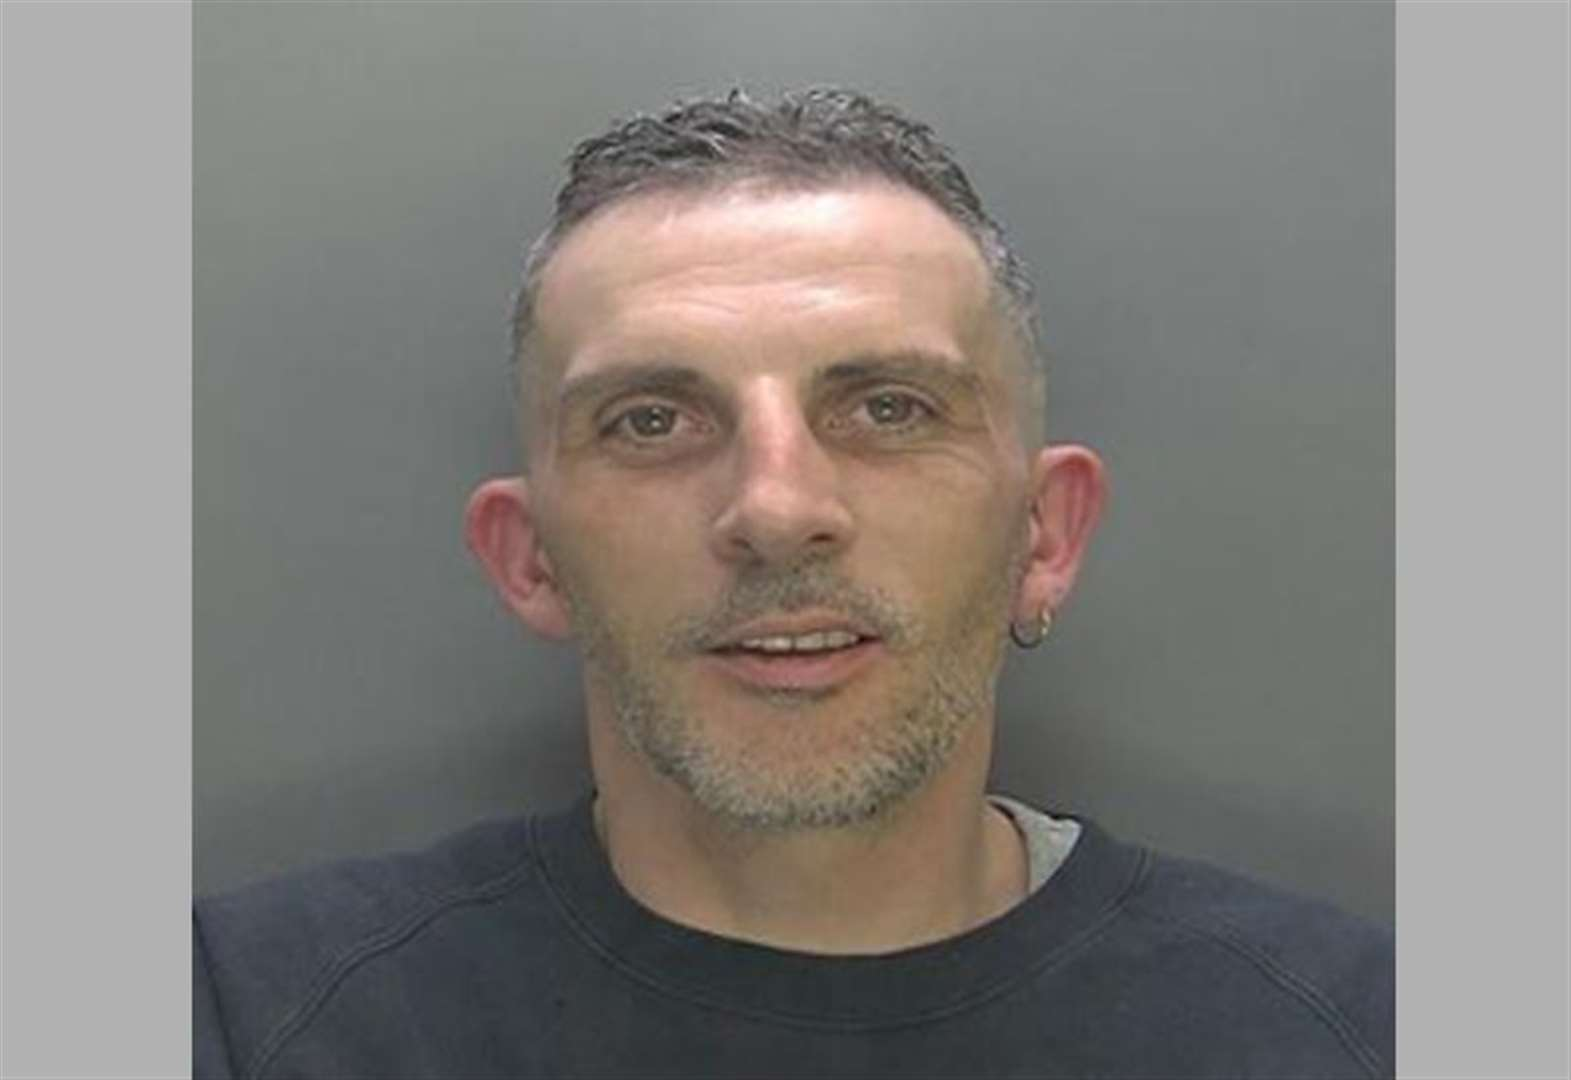 Man jailed for stealing from woman's house weeks after she died